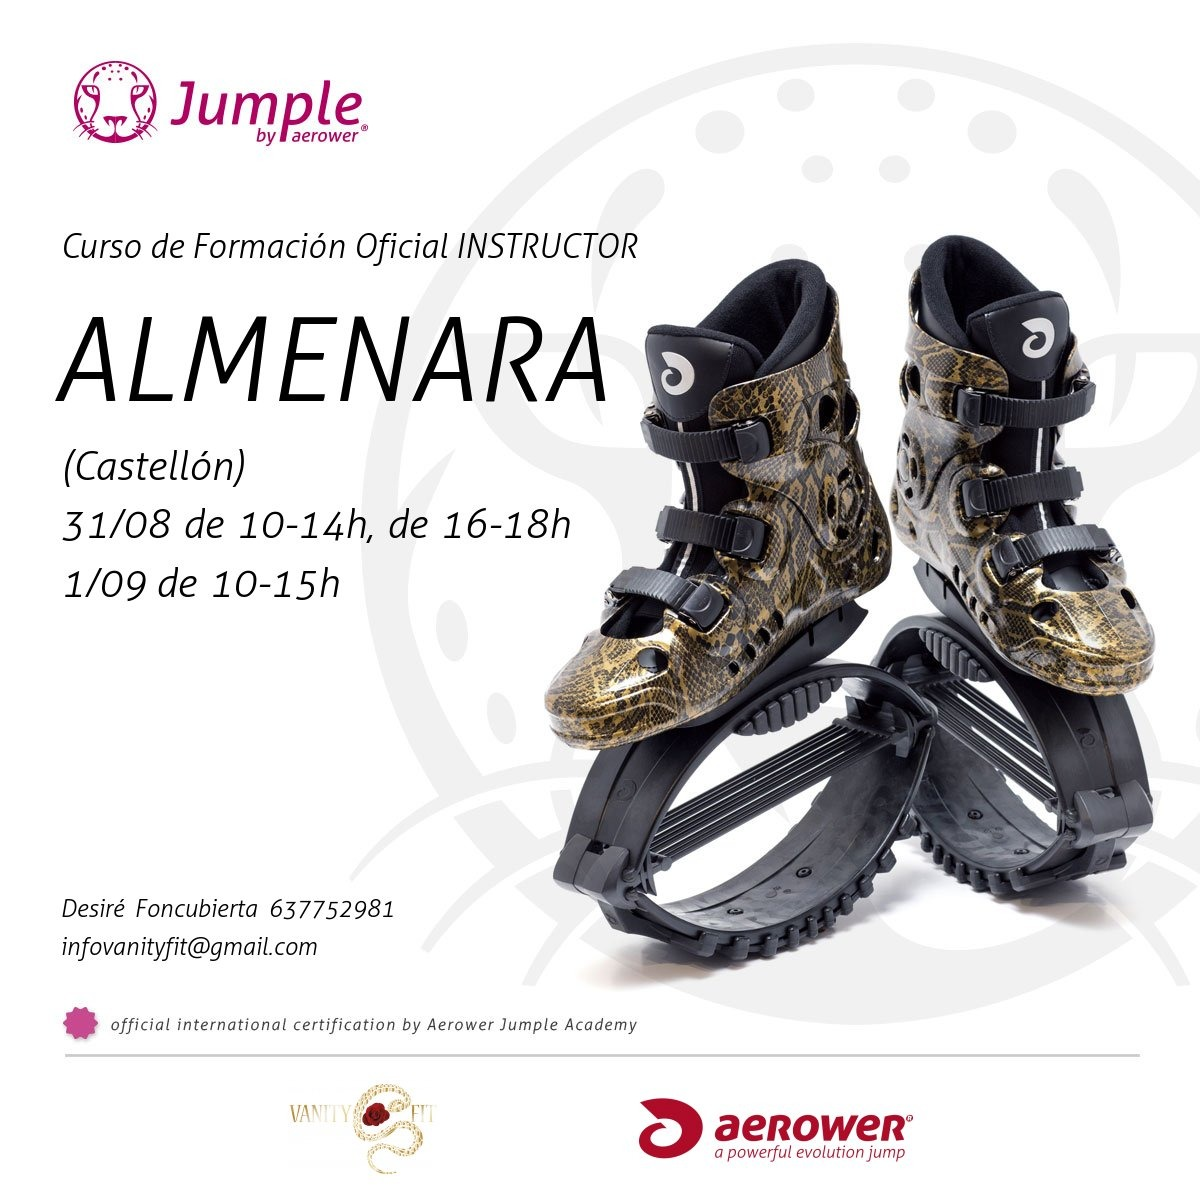 formacion oficial instructor jumple aerower